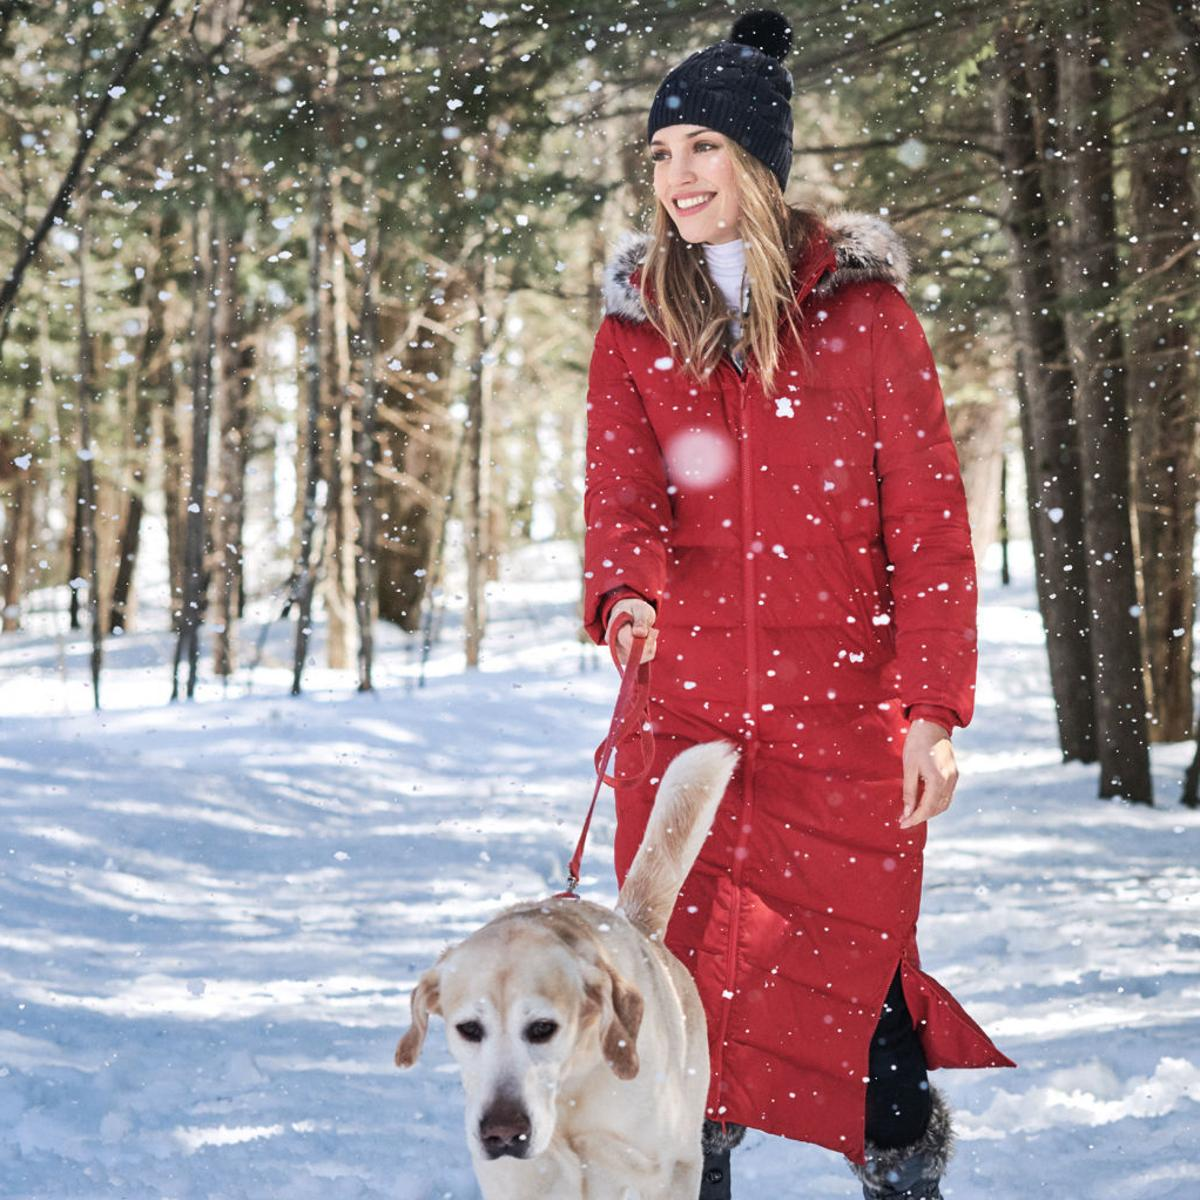 622d9555d Lands' End coat is one of Oprah Winfrey's 'Favorite Things ...